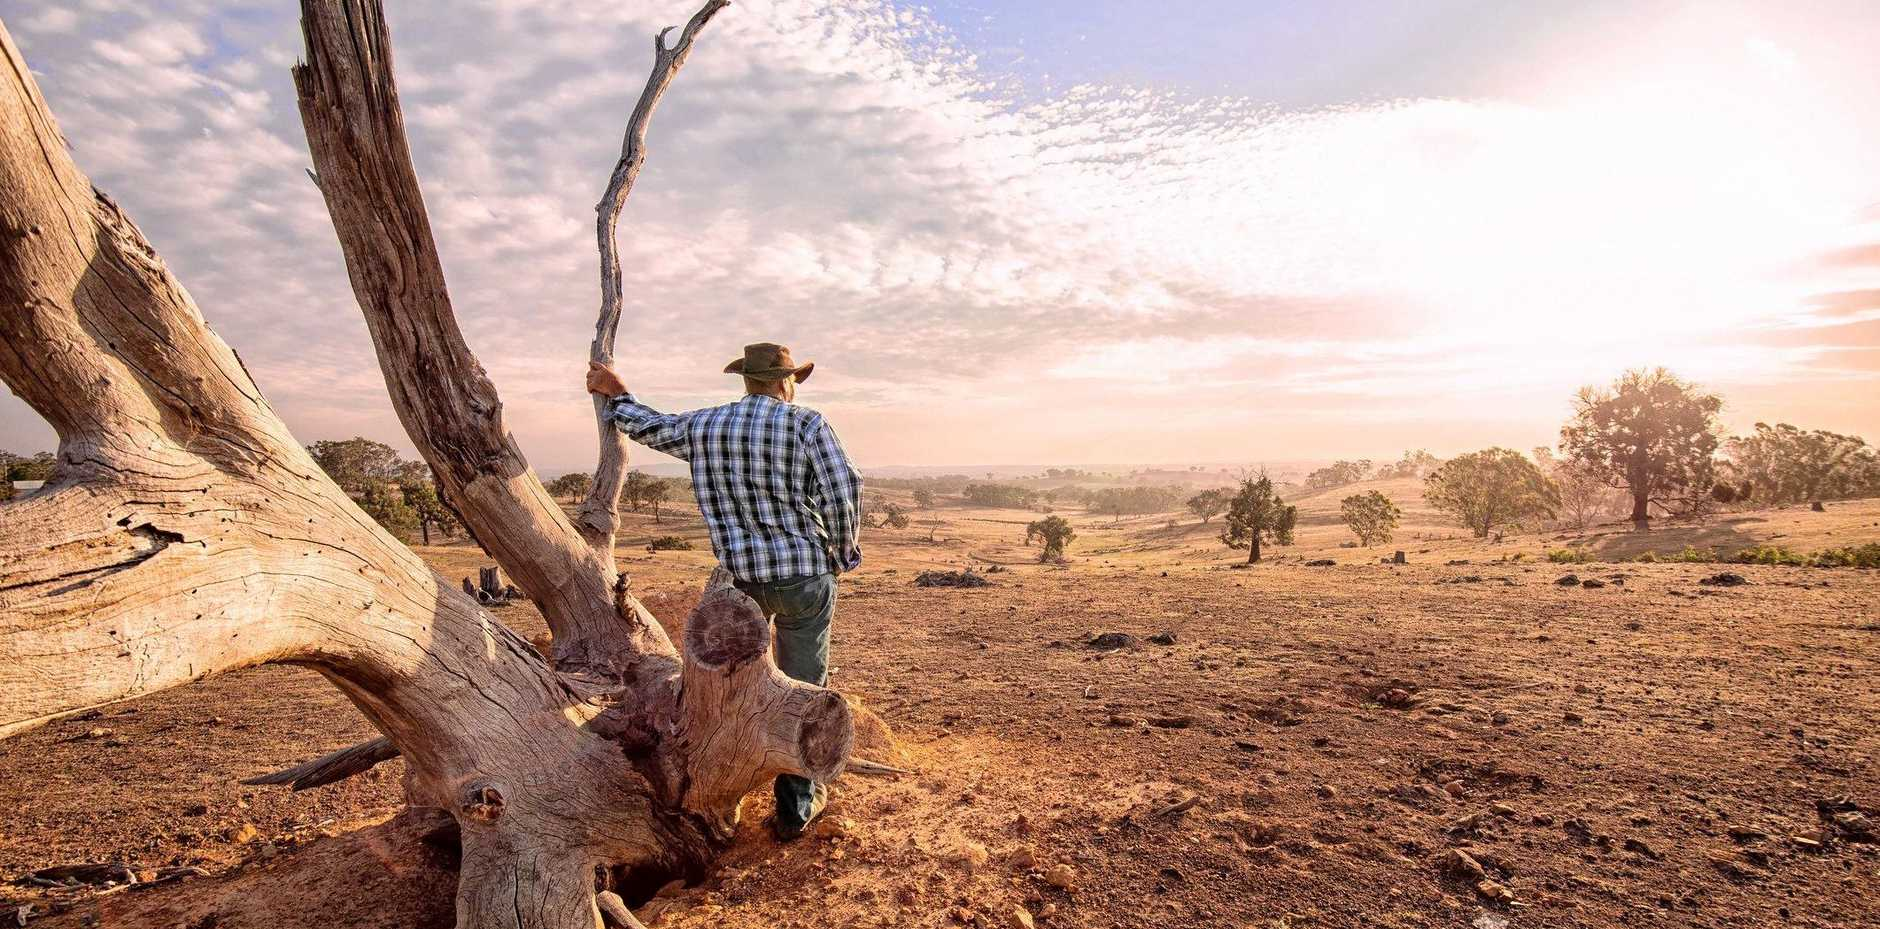 A farmer looks out over the drought stricken land.